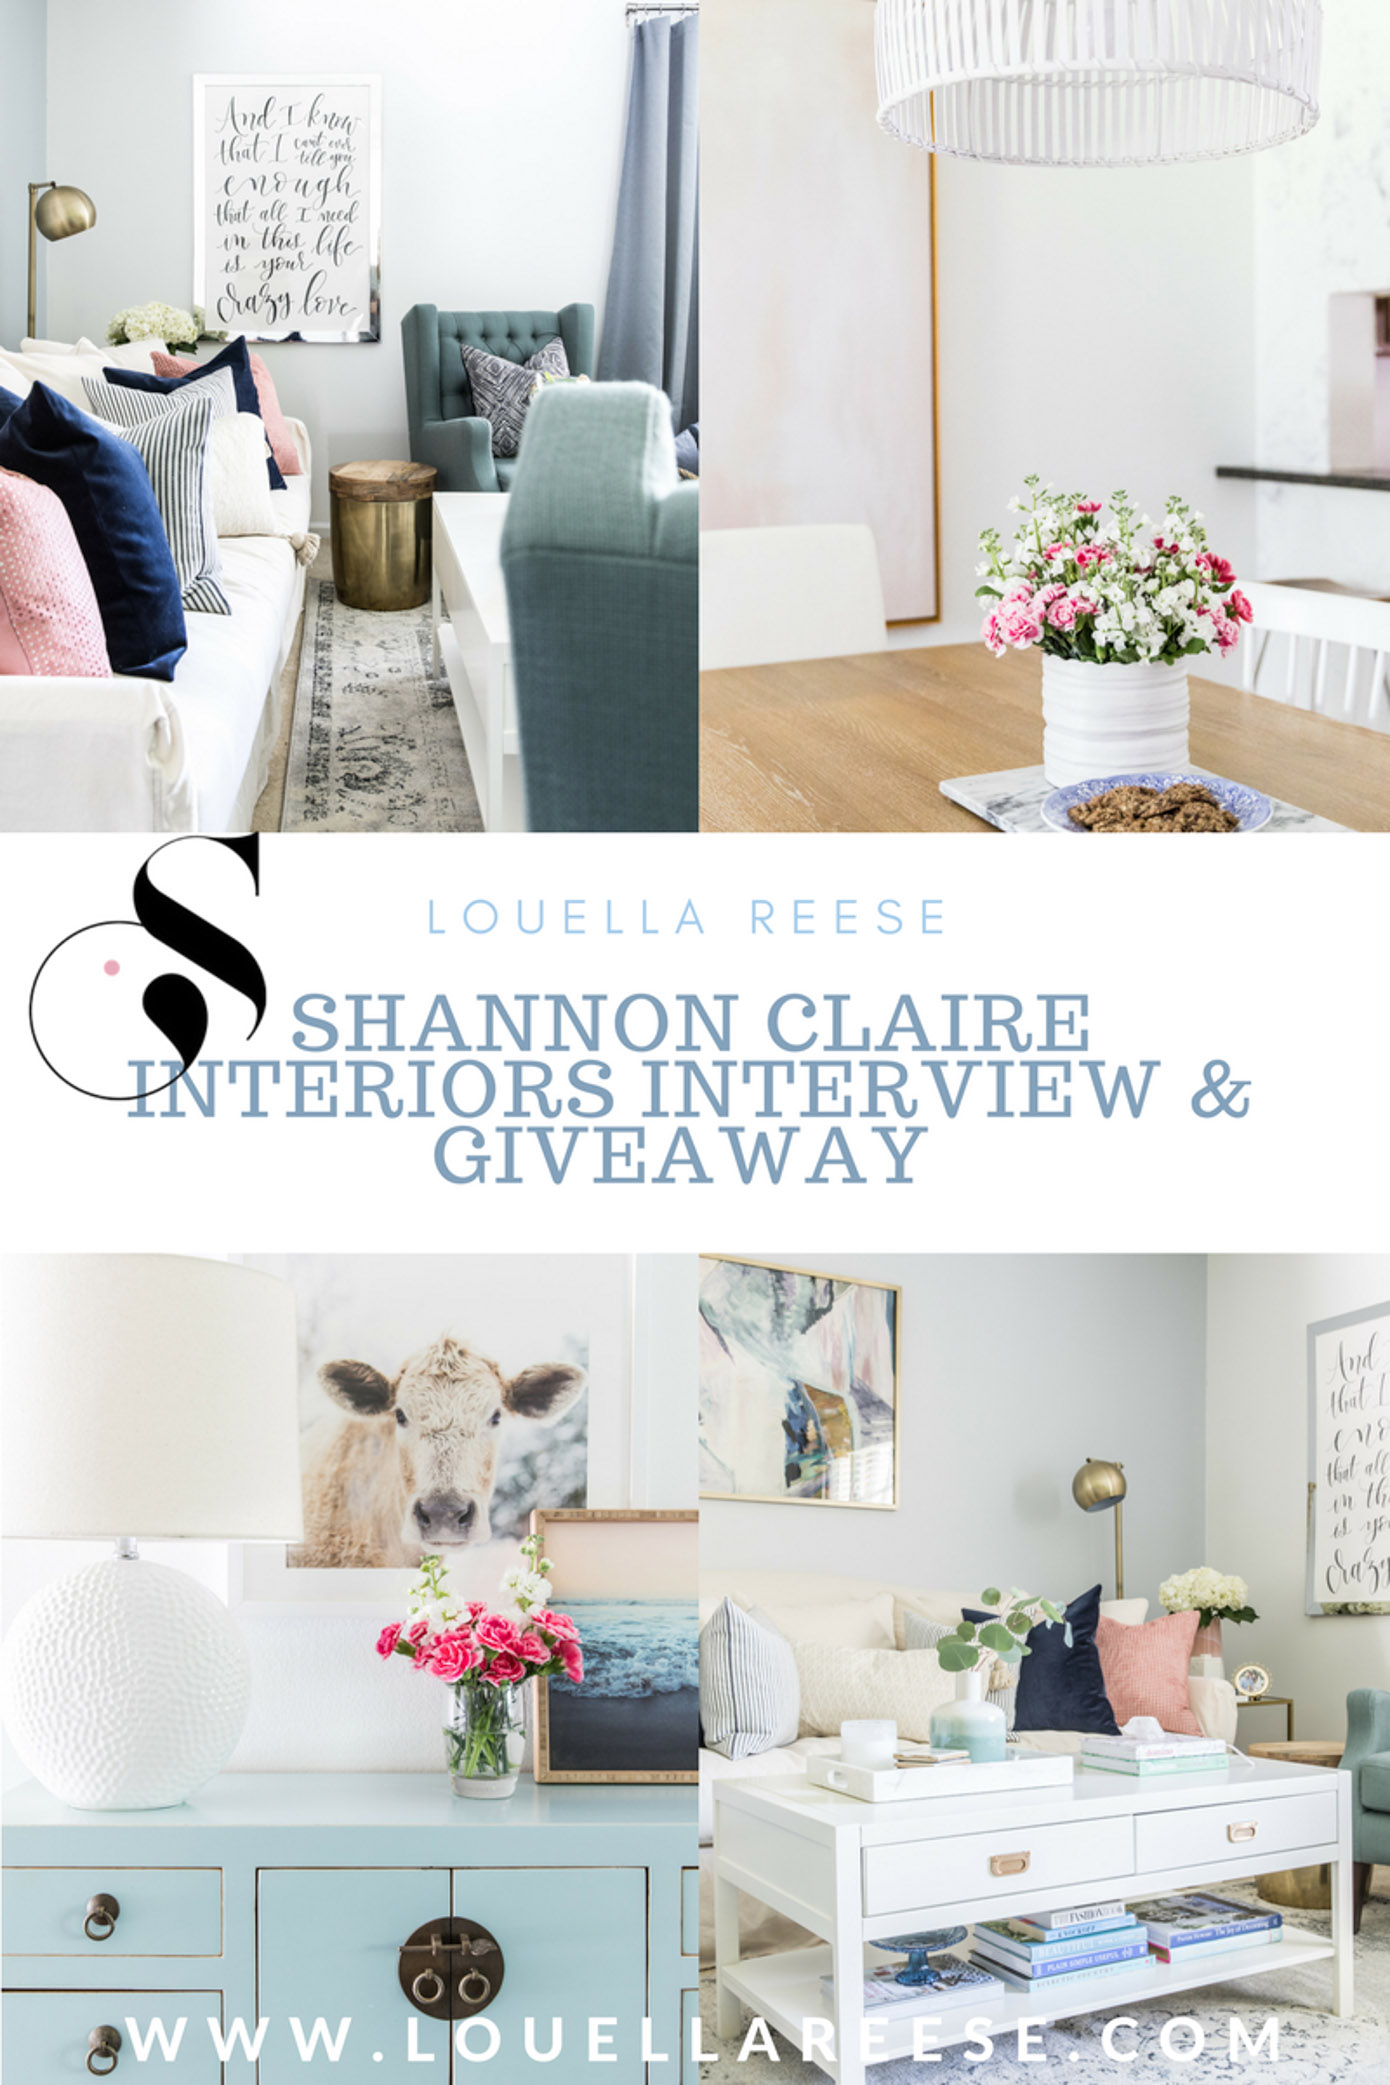 Shannon Claire Interiors Interview | E-Design Giveaway | Louella Reese Life & Style Blog